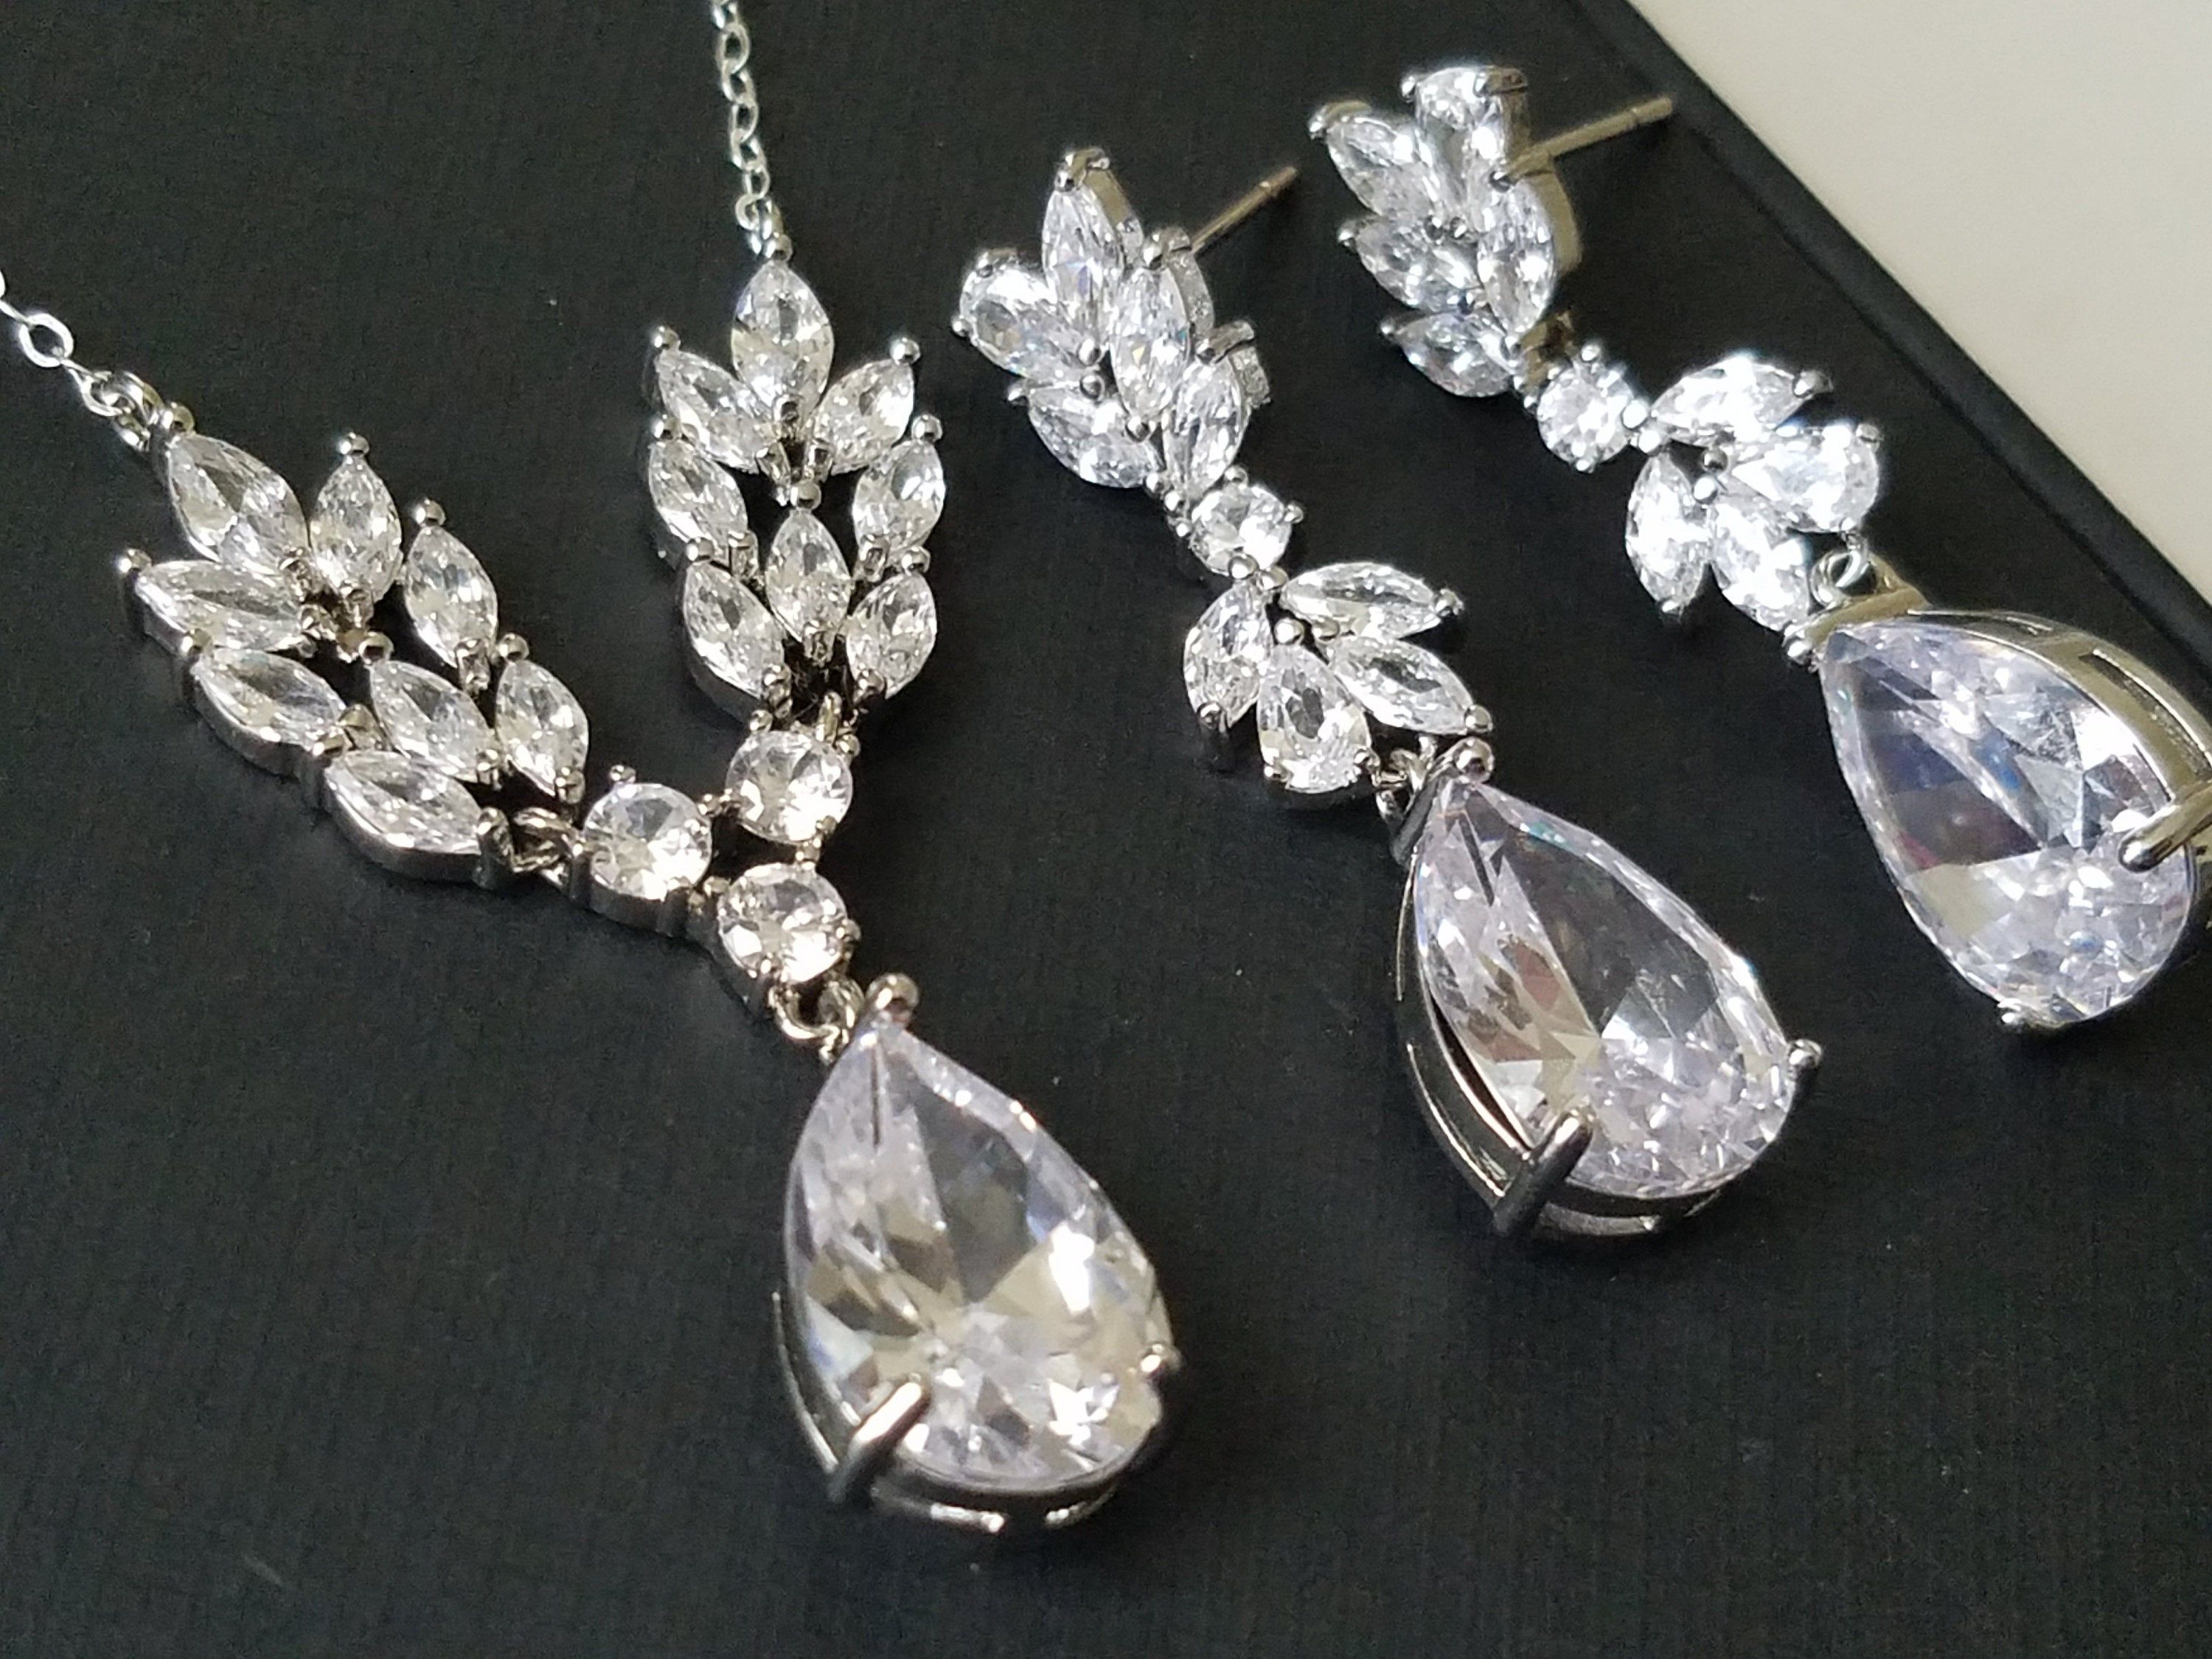 Crystal Bridal Earrings and Necklace Silver Teardrop Wedding Jewelry for Brides Statement Bridal Jewelry Set Cubic Zirconia